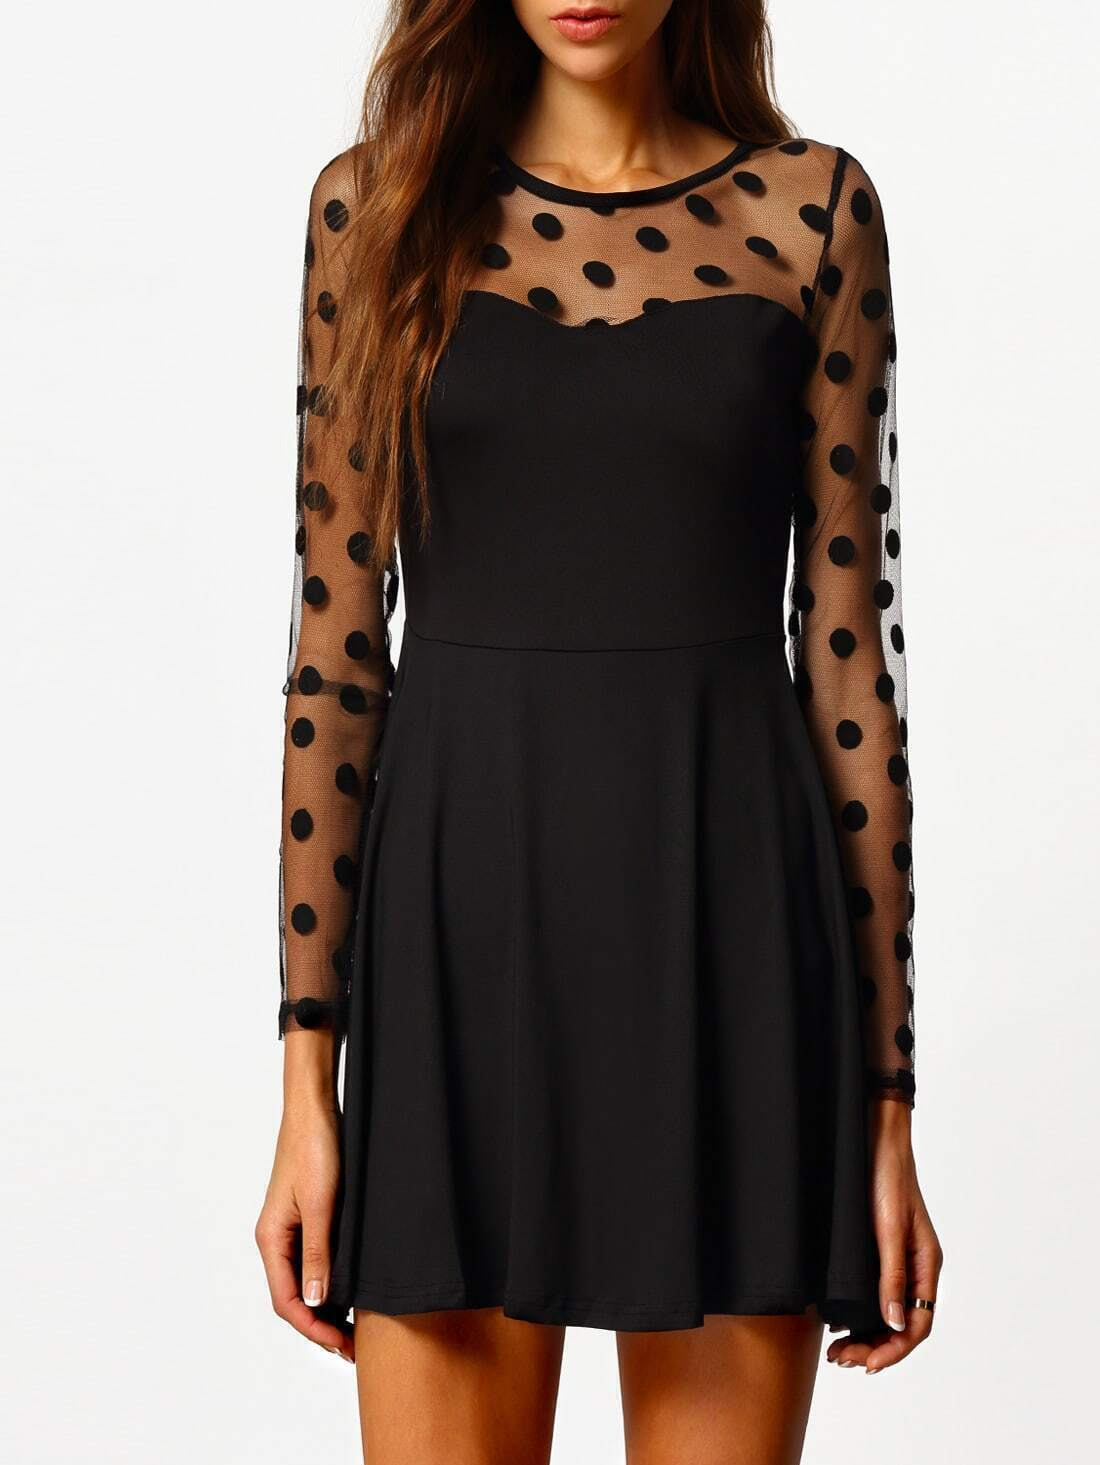 Polka Dot Sheer Lace Dress - $19.98